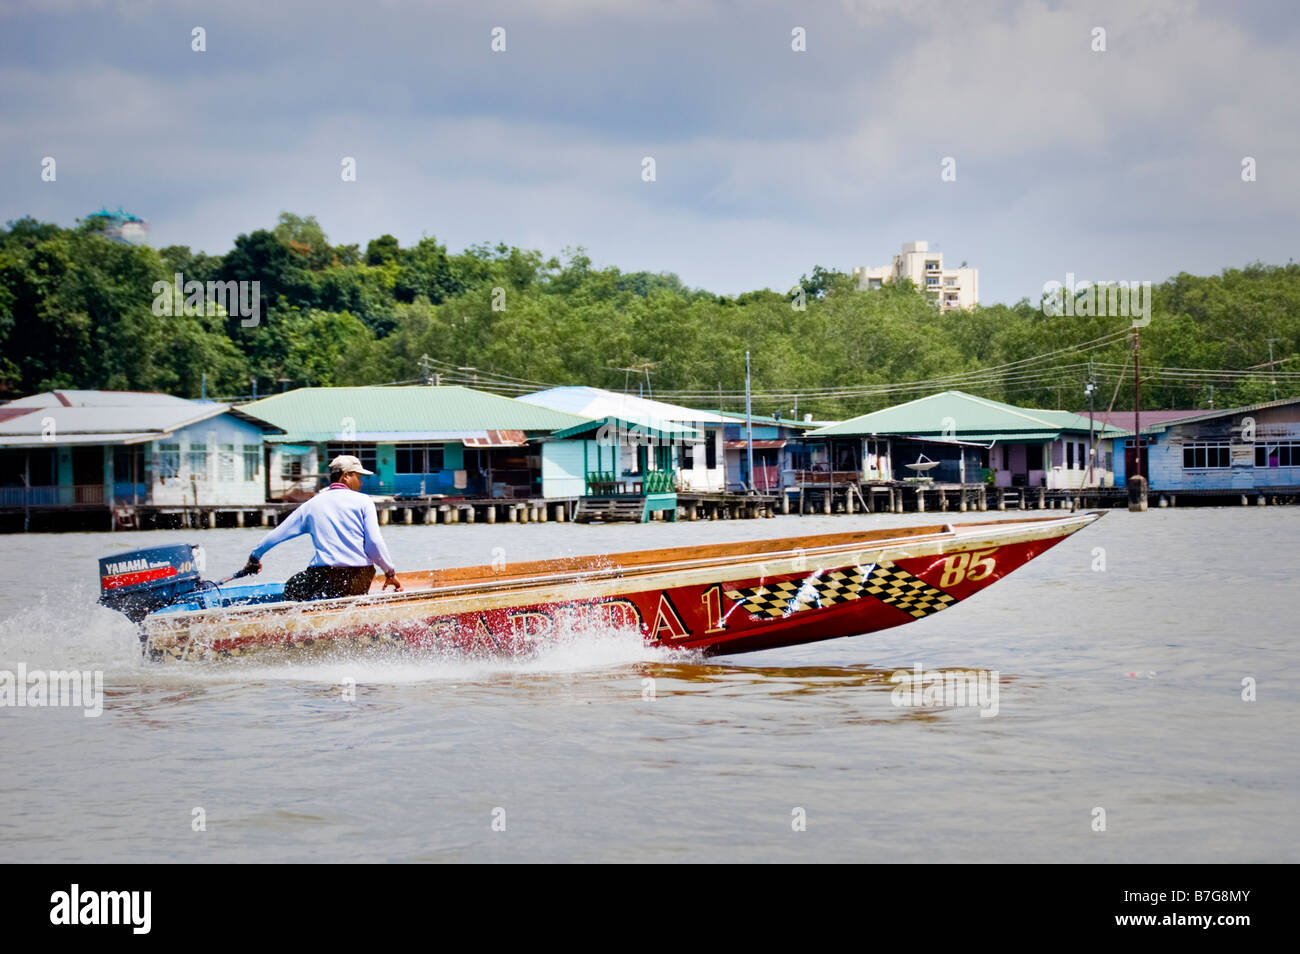 Speedboat on the River Brunei in Bandar Seri Begawan - Stock Image